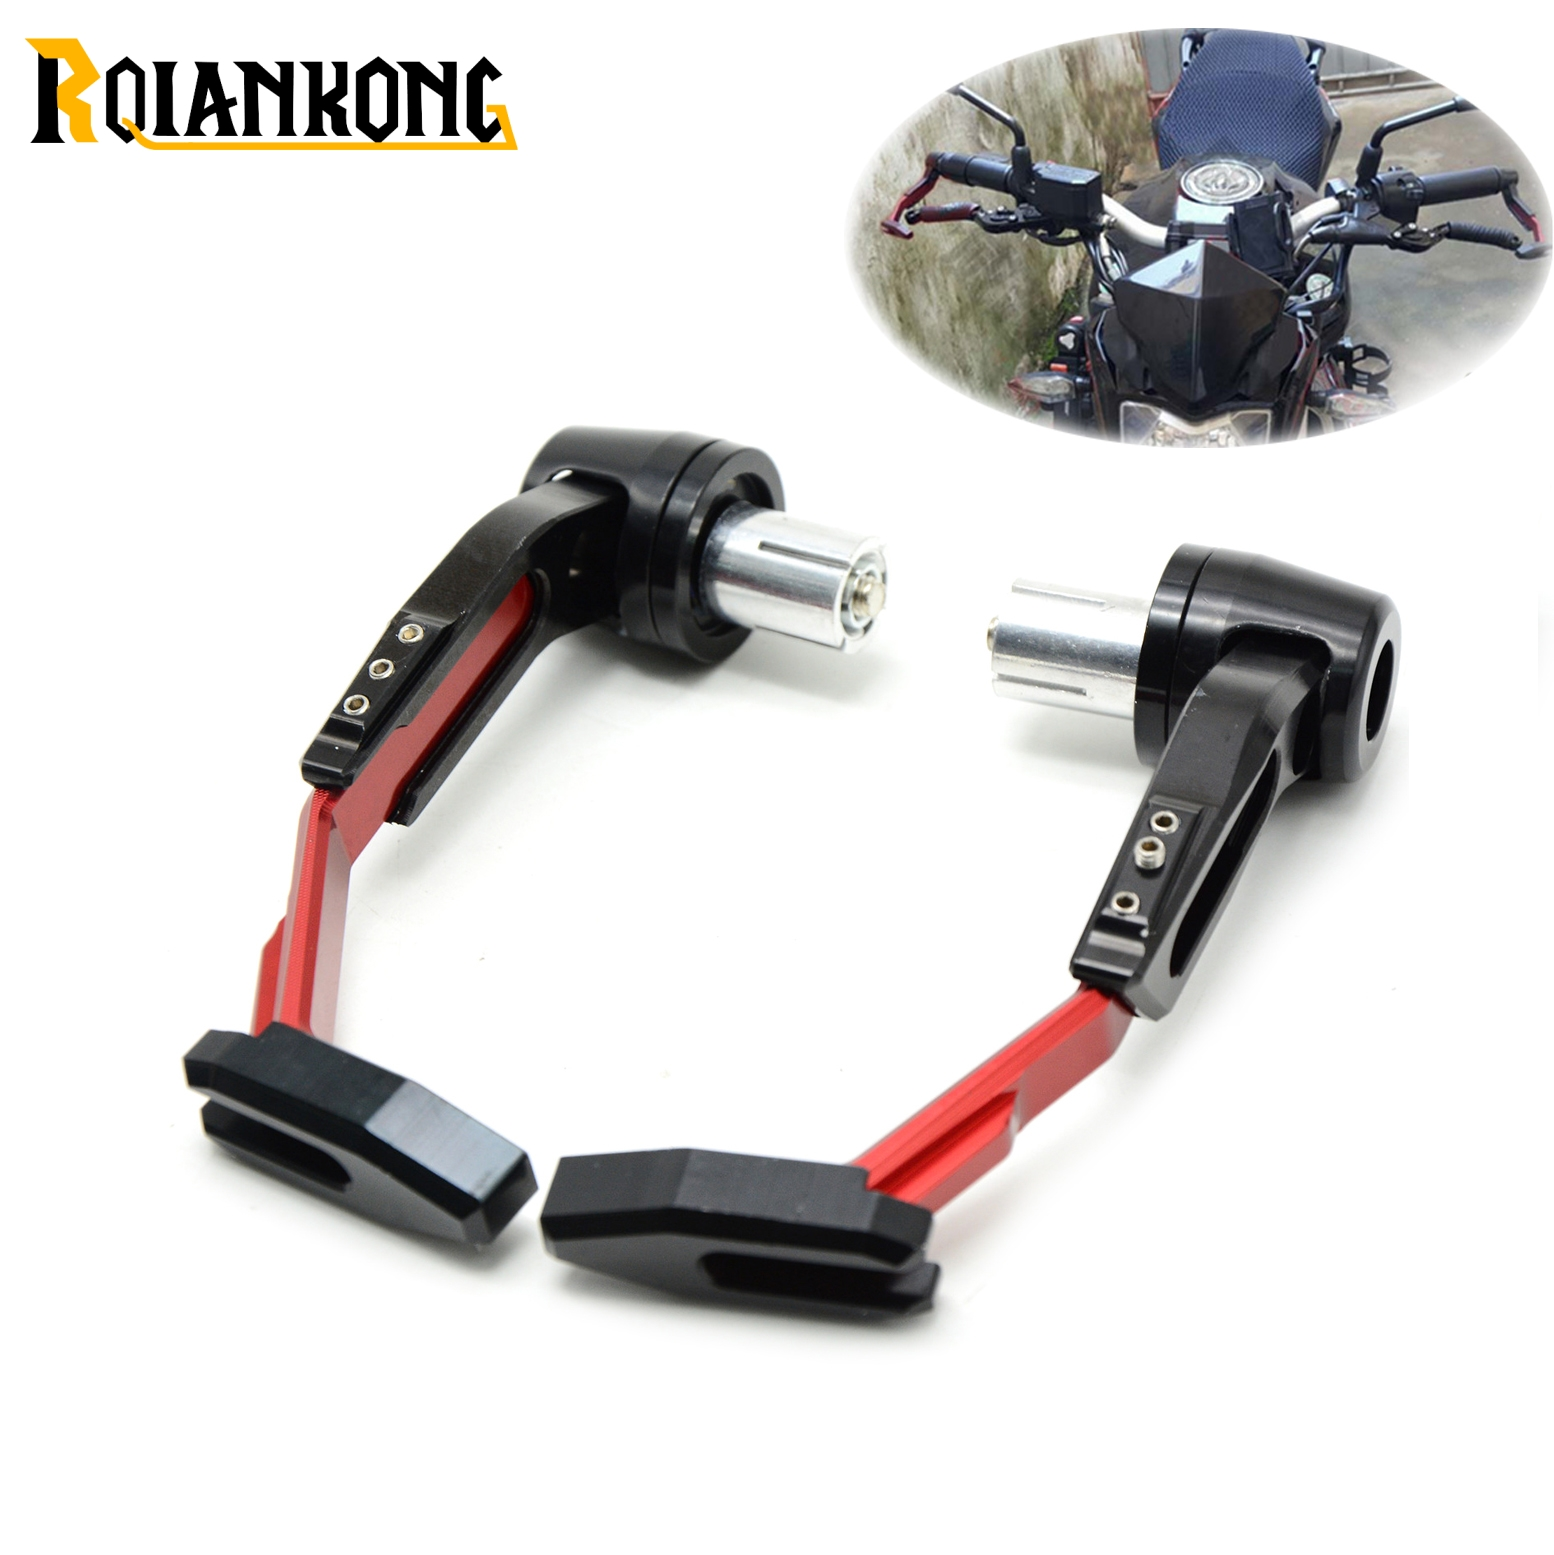 Universal 22mm Motorcycle Handlebar Clutch Brake Lever Protect Guard for Ducati 899 959 1098 1100 1198 1199 1299 R S panigale for 22mm 7 8 handlebar motorcycle dirt bike universal stunt clutch lever assembly cnc aluminum